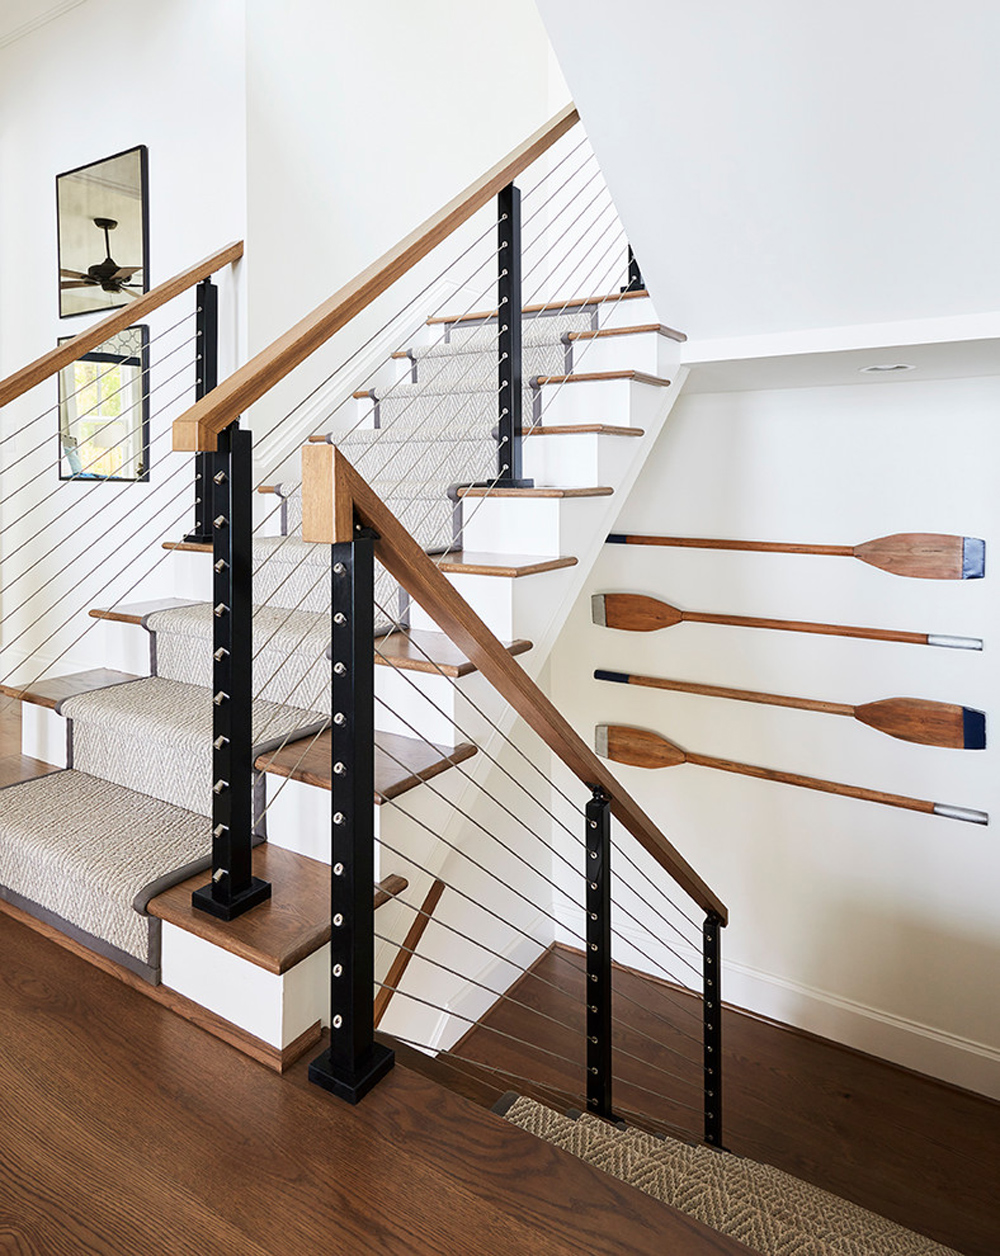 The Carpet For Stairs And How To Pick The Best One Out There